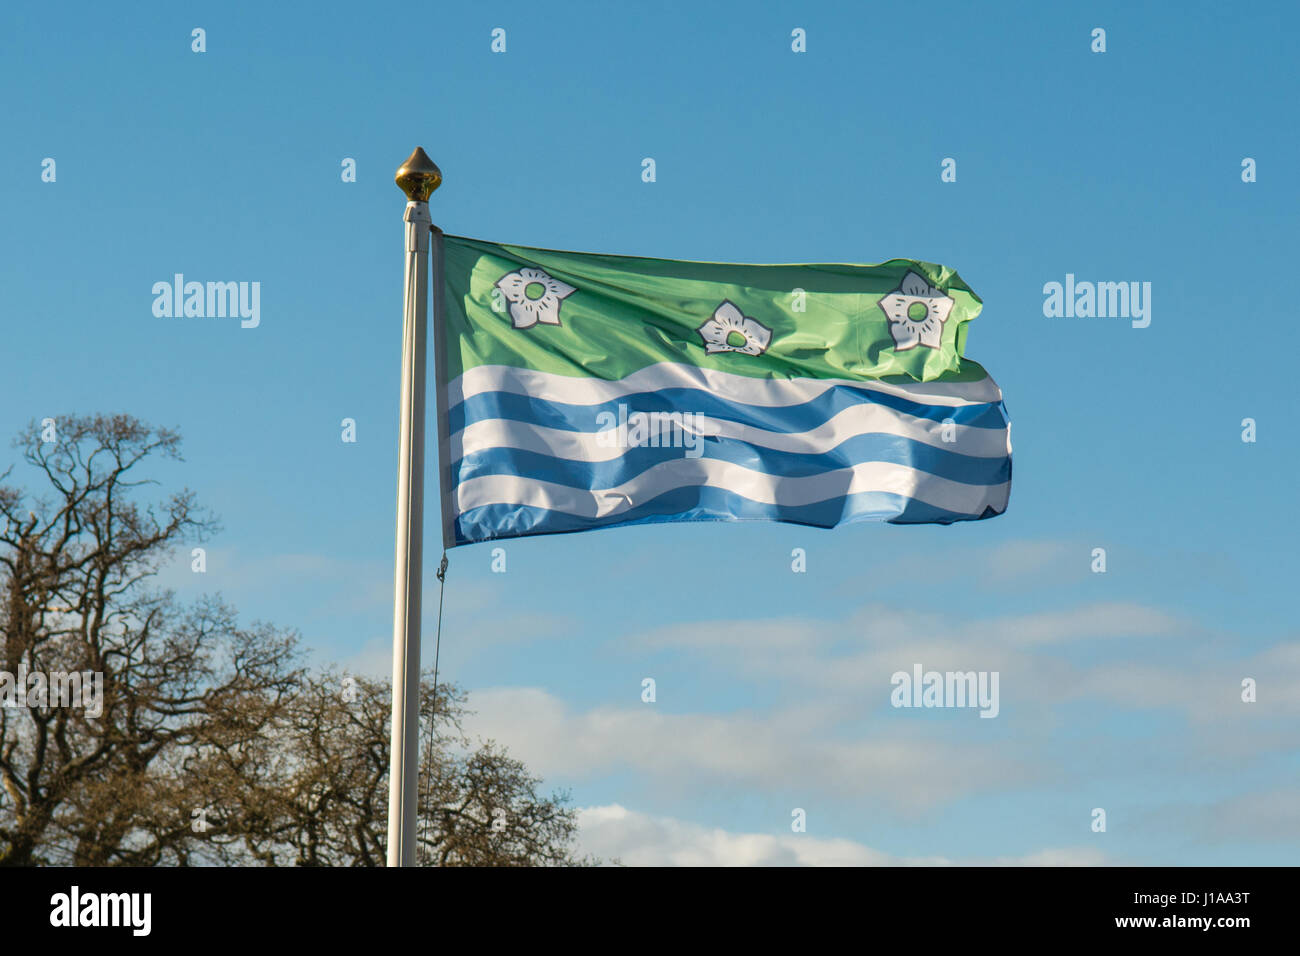 Drapeau de Cumberland Photo Stock